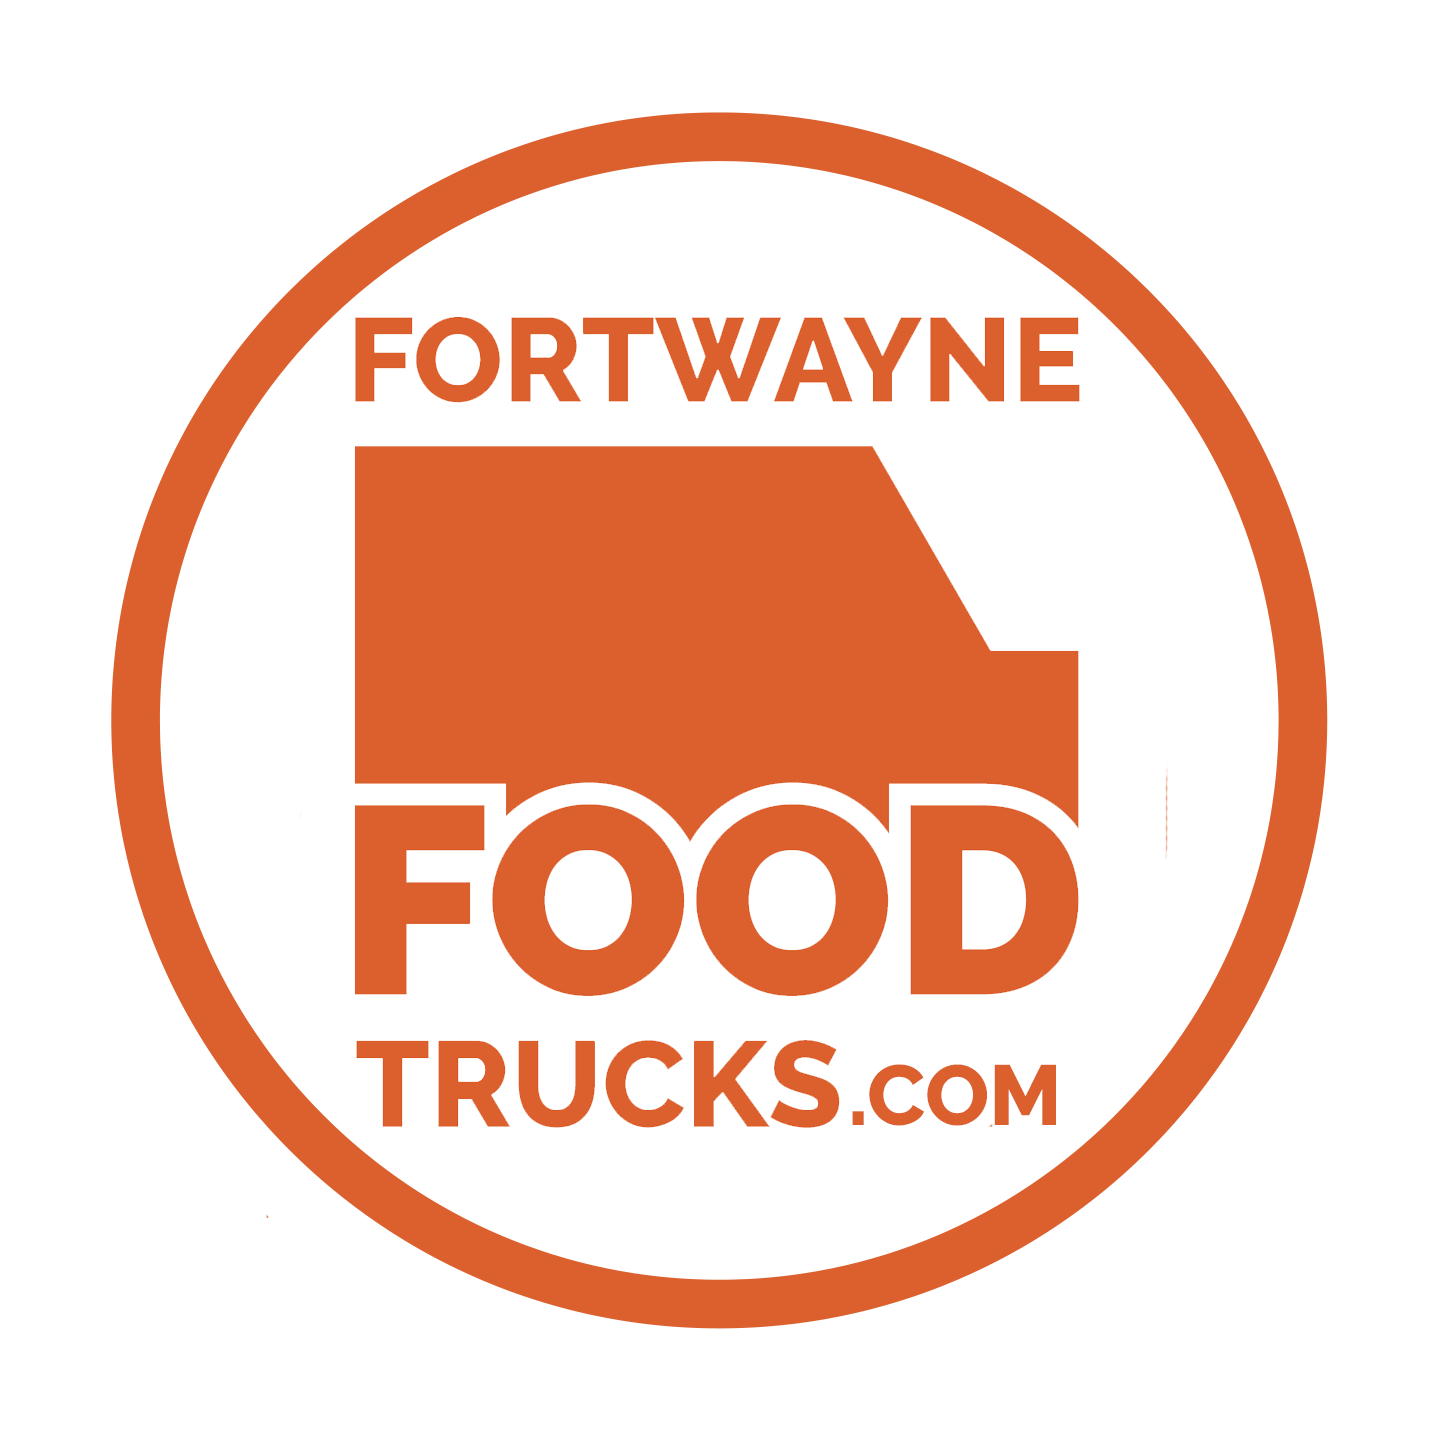 Fort Wayne Food Trucks